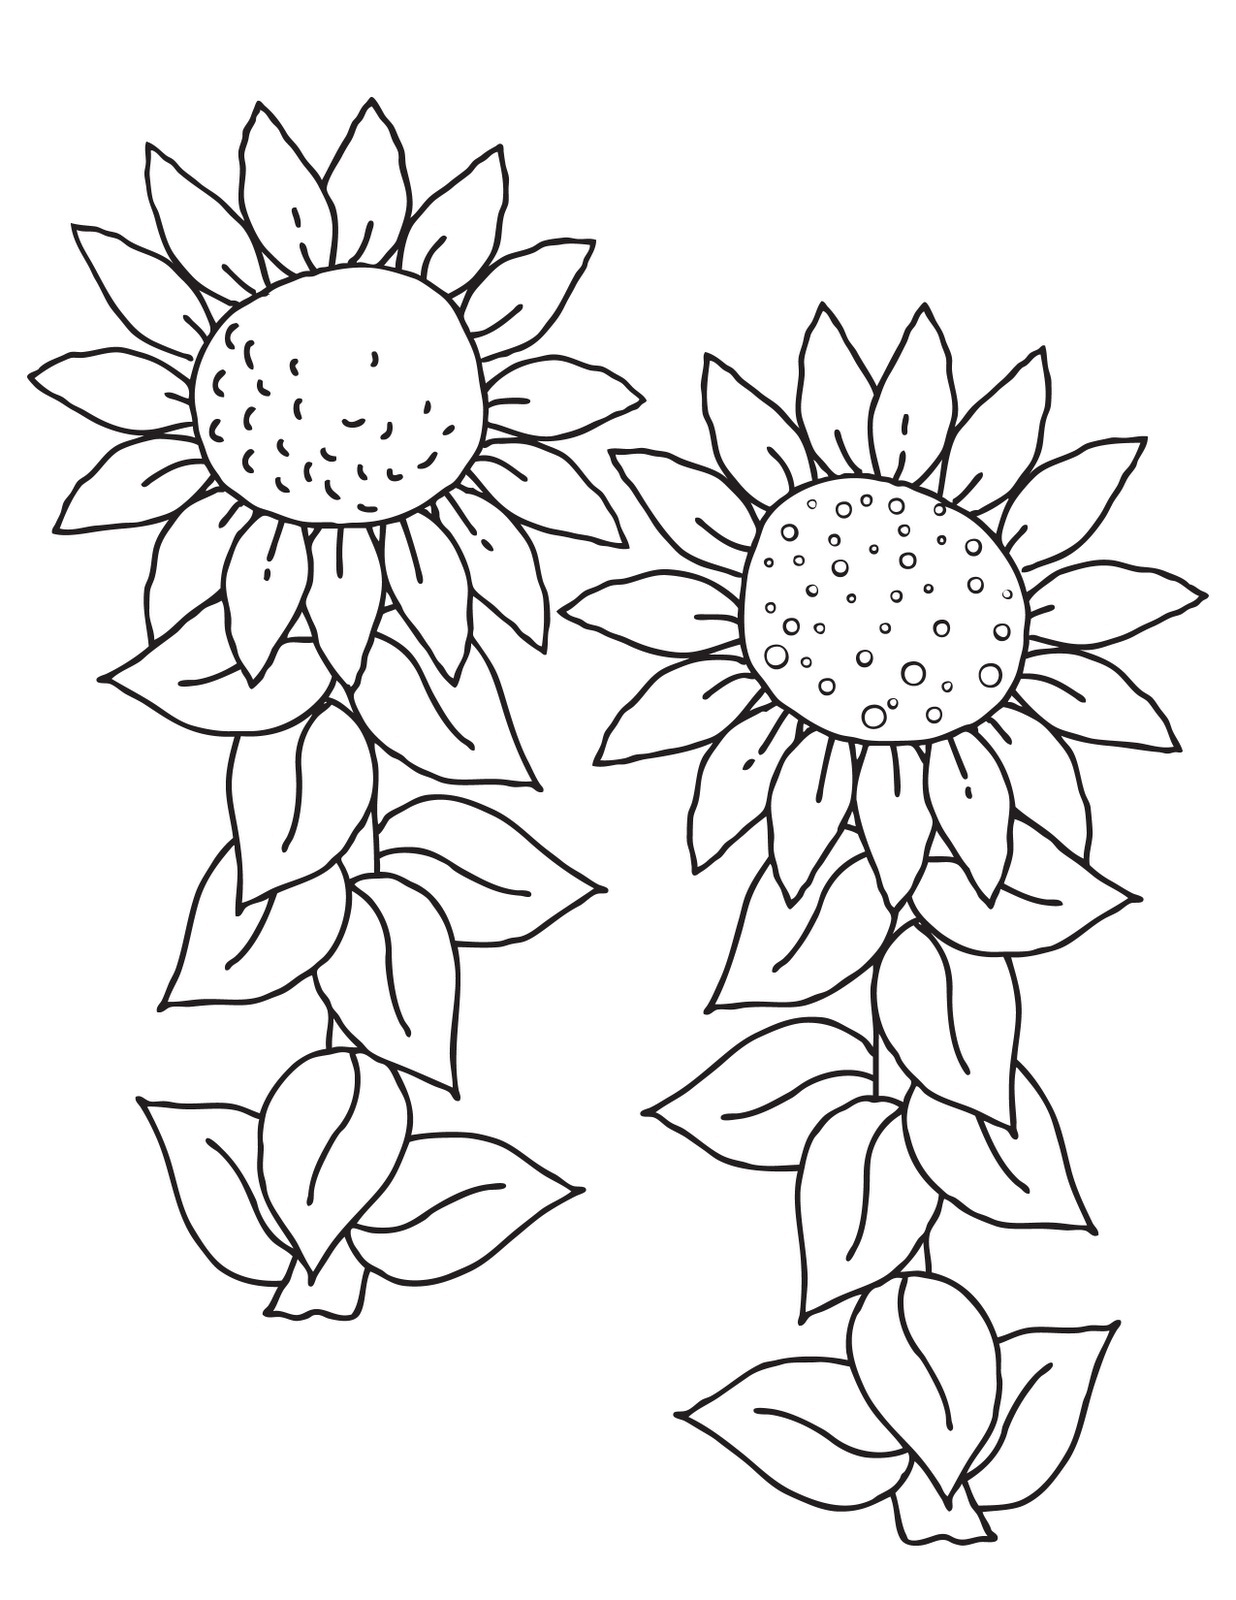 Sunflower coloring clipart clipart library library Free Sunflower Color Sheets, Download Free Clip Art, Free ... clipart library library